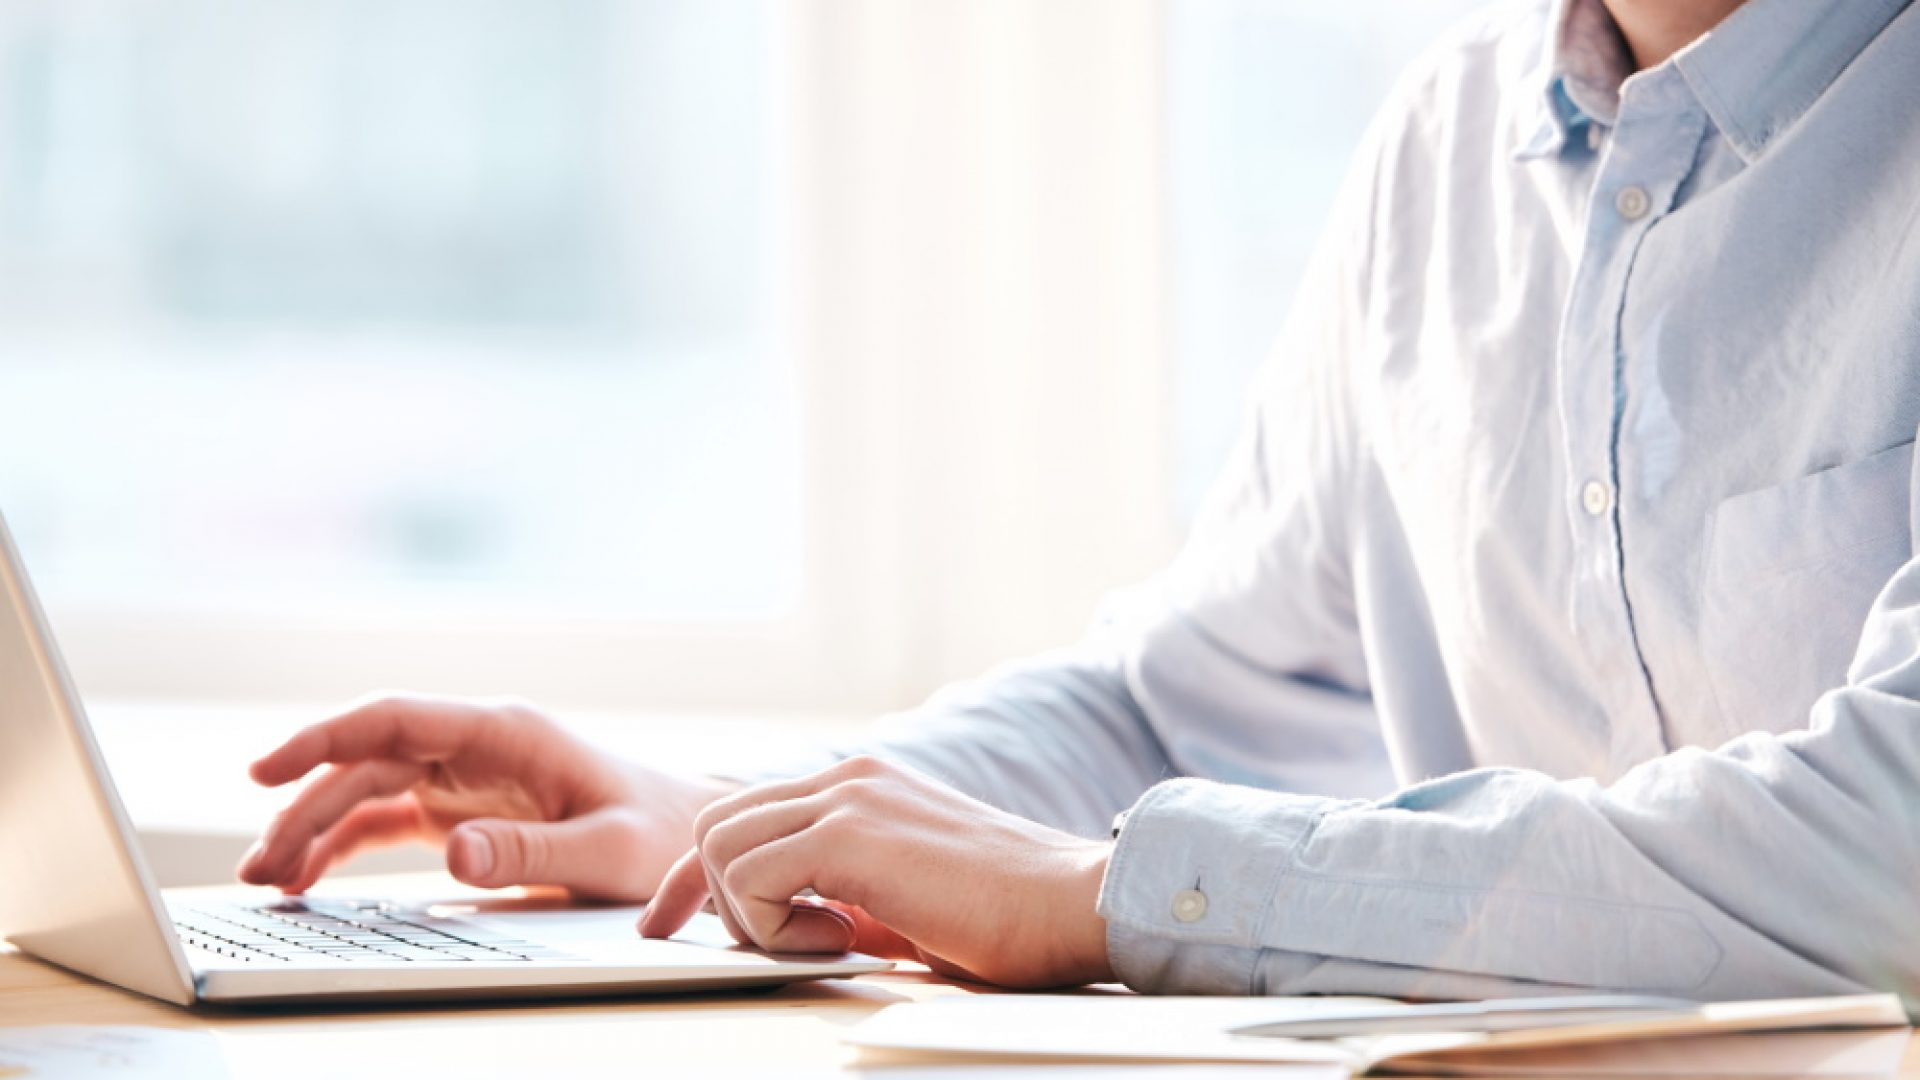 Close-up of busy man sitting at table and using laptop while analyzing internet resources